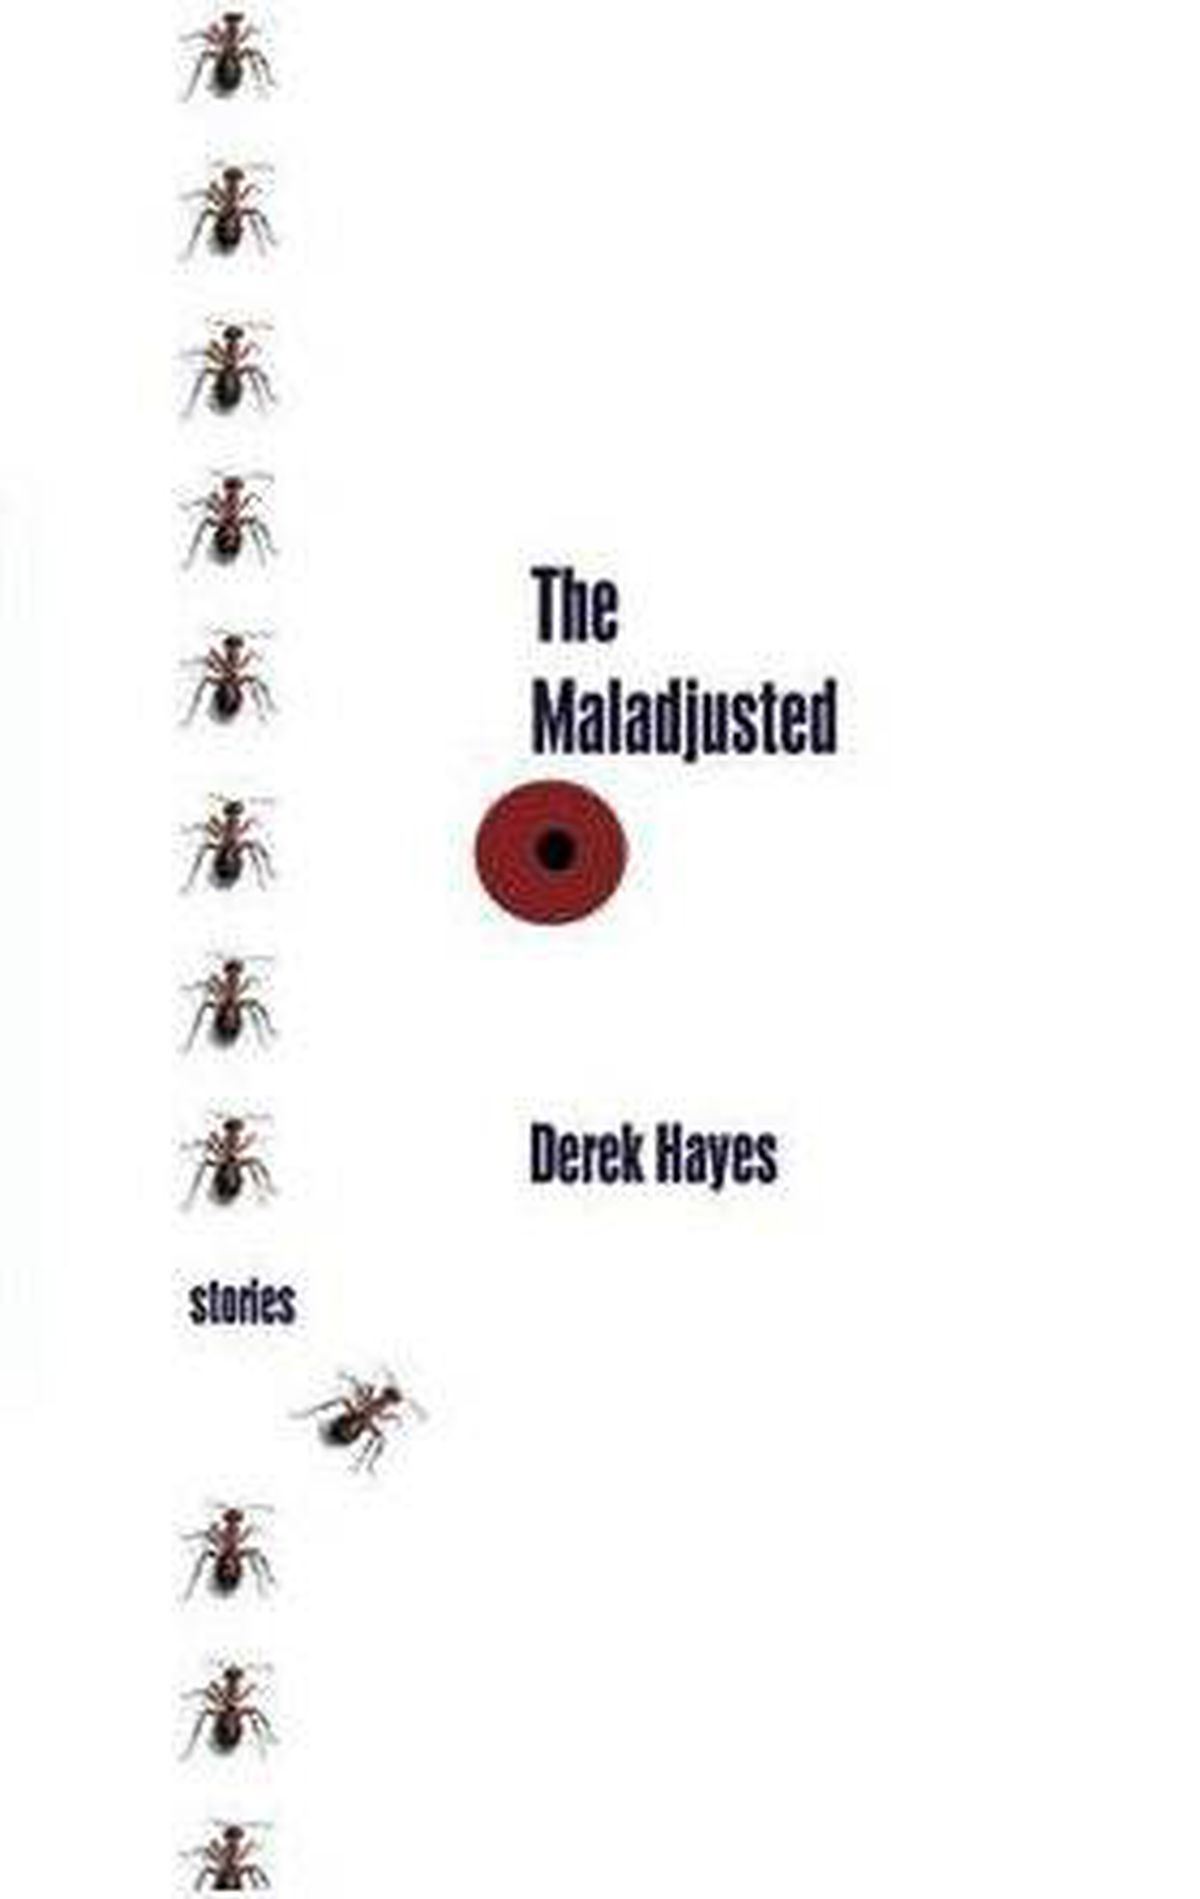 The Maladjusted, by Derek Hayes. Thistledown, 203 pages, $18.95